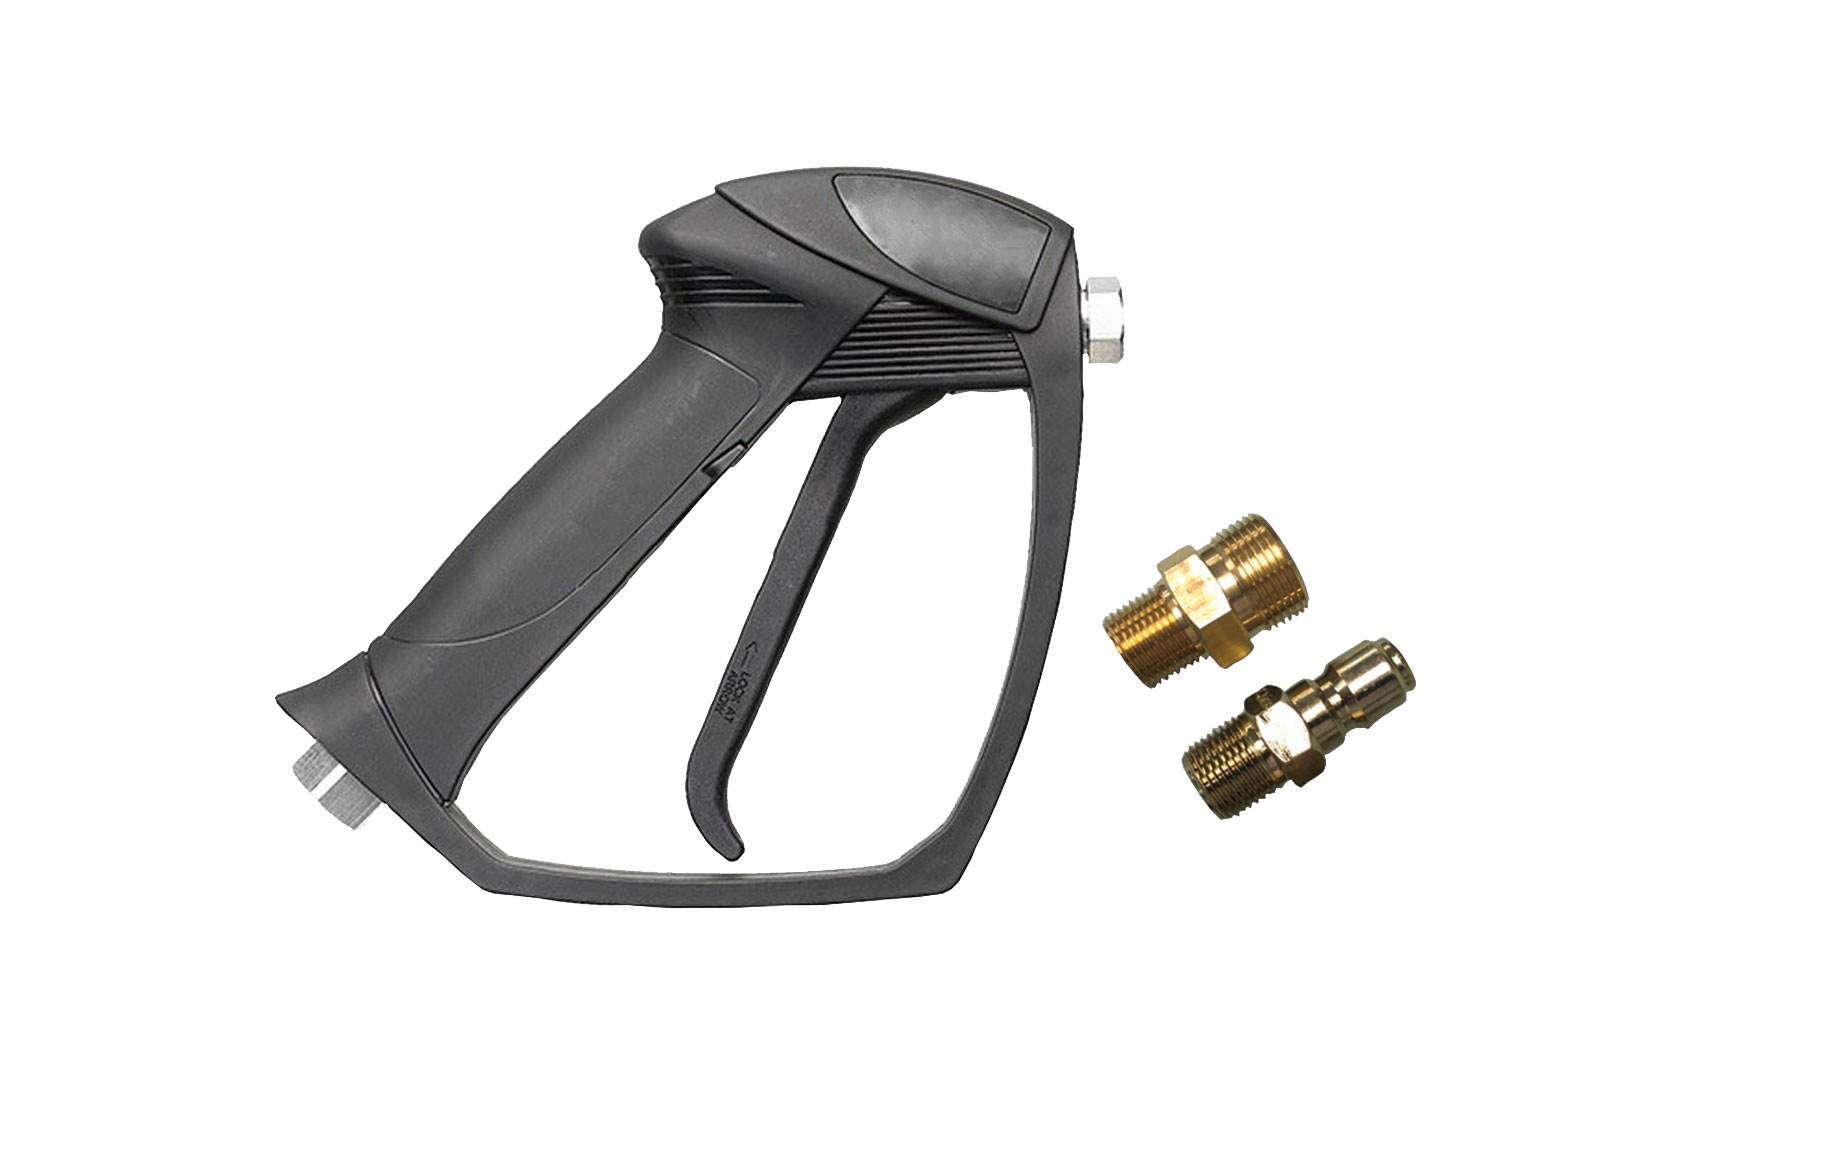 Image of spray gun handle and 2 metal fittings